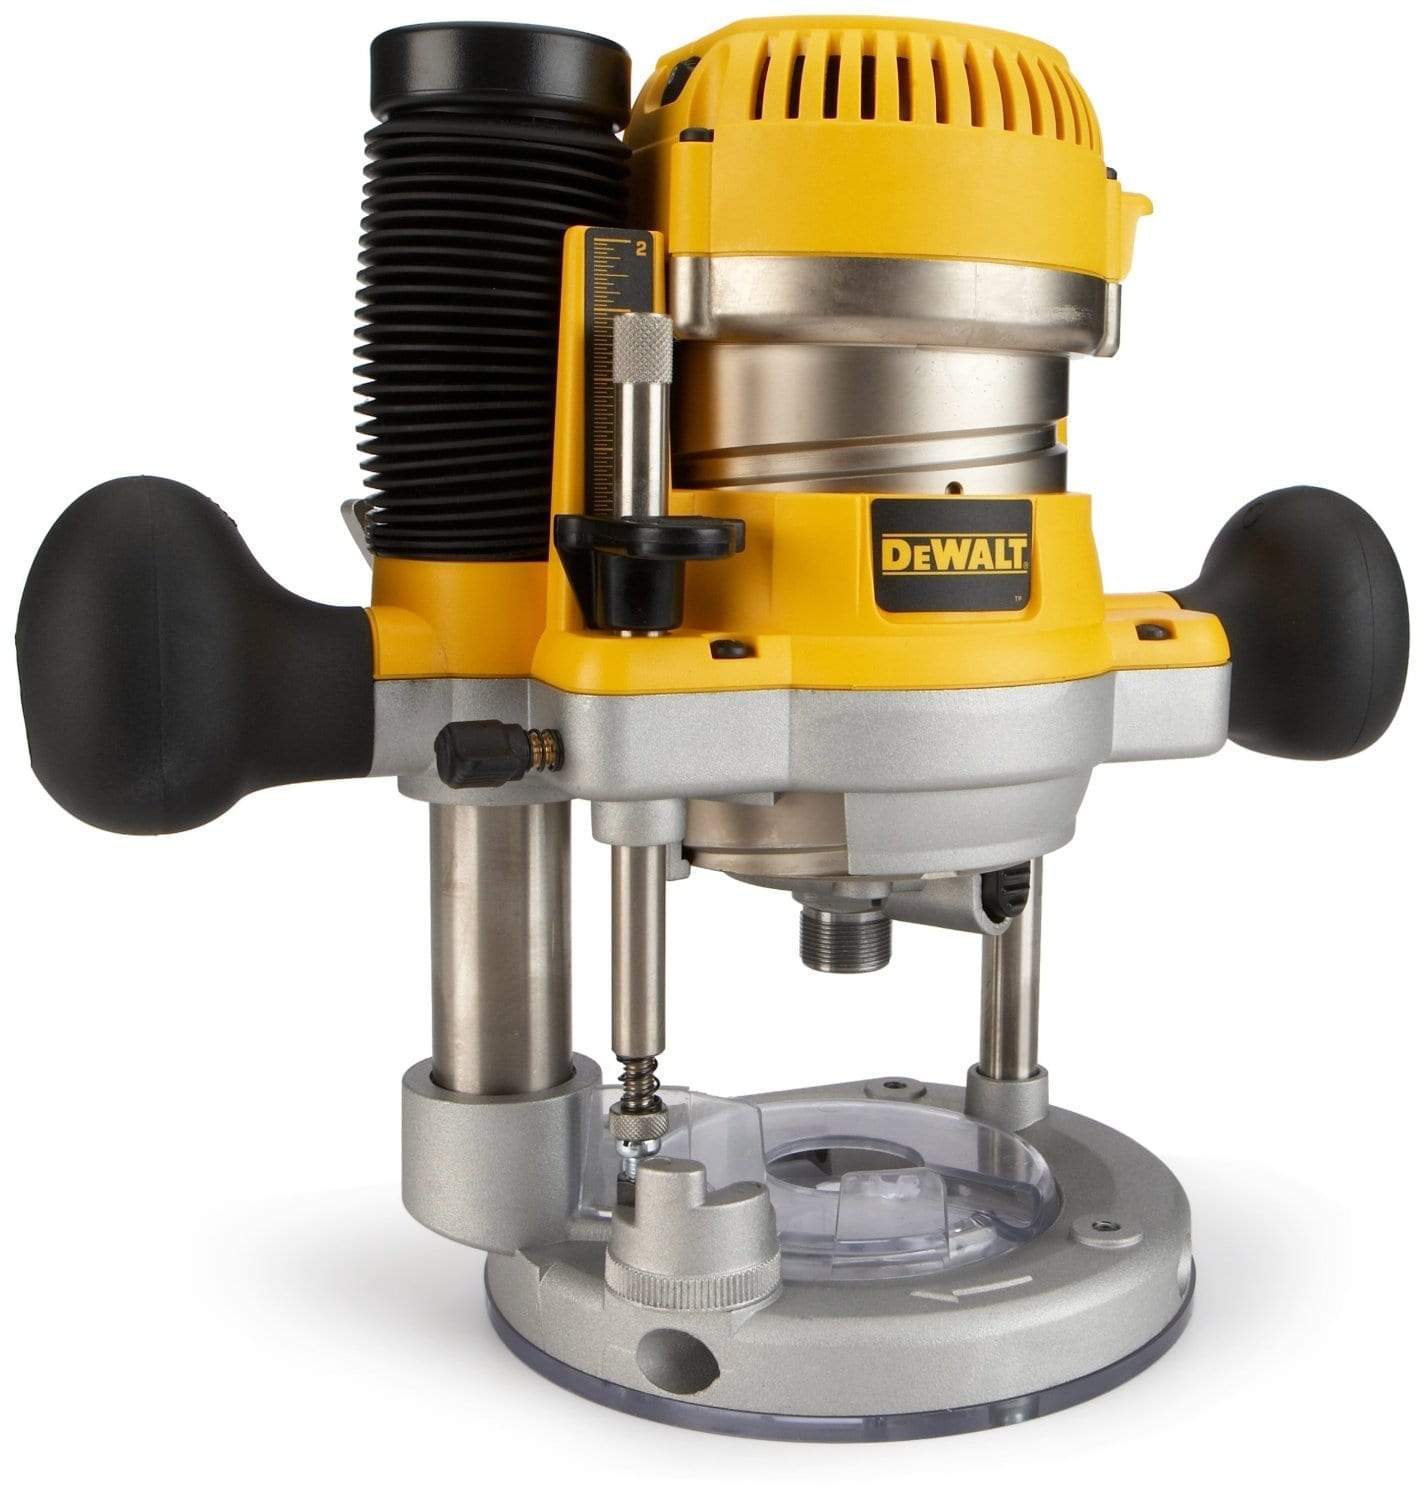 DEWALT DW618 Fixed-Base Router